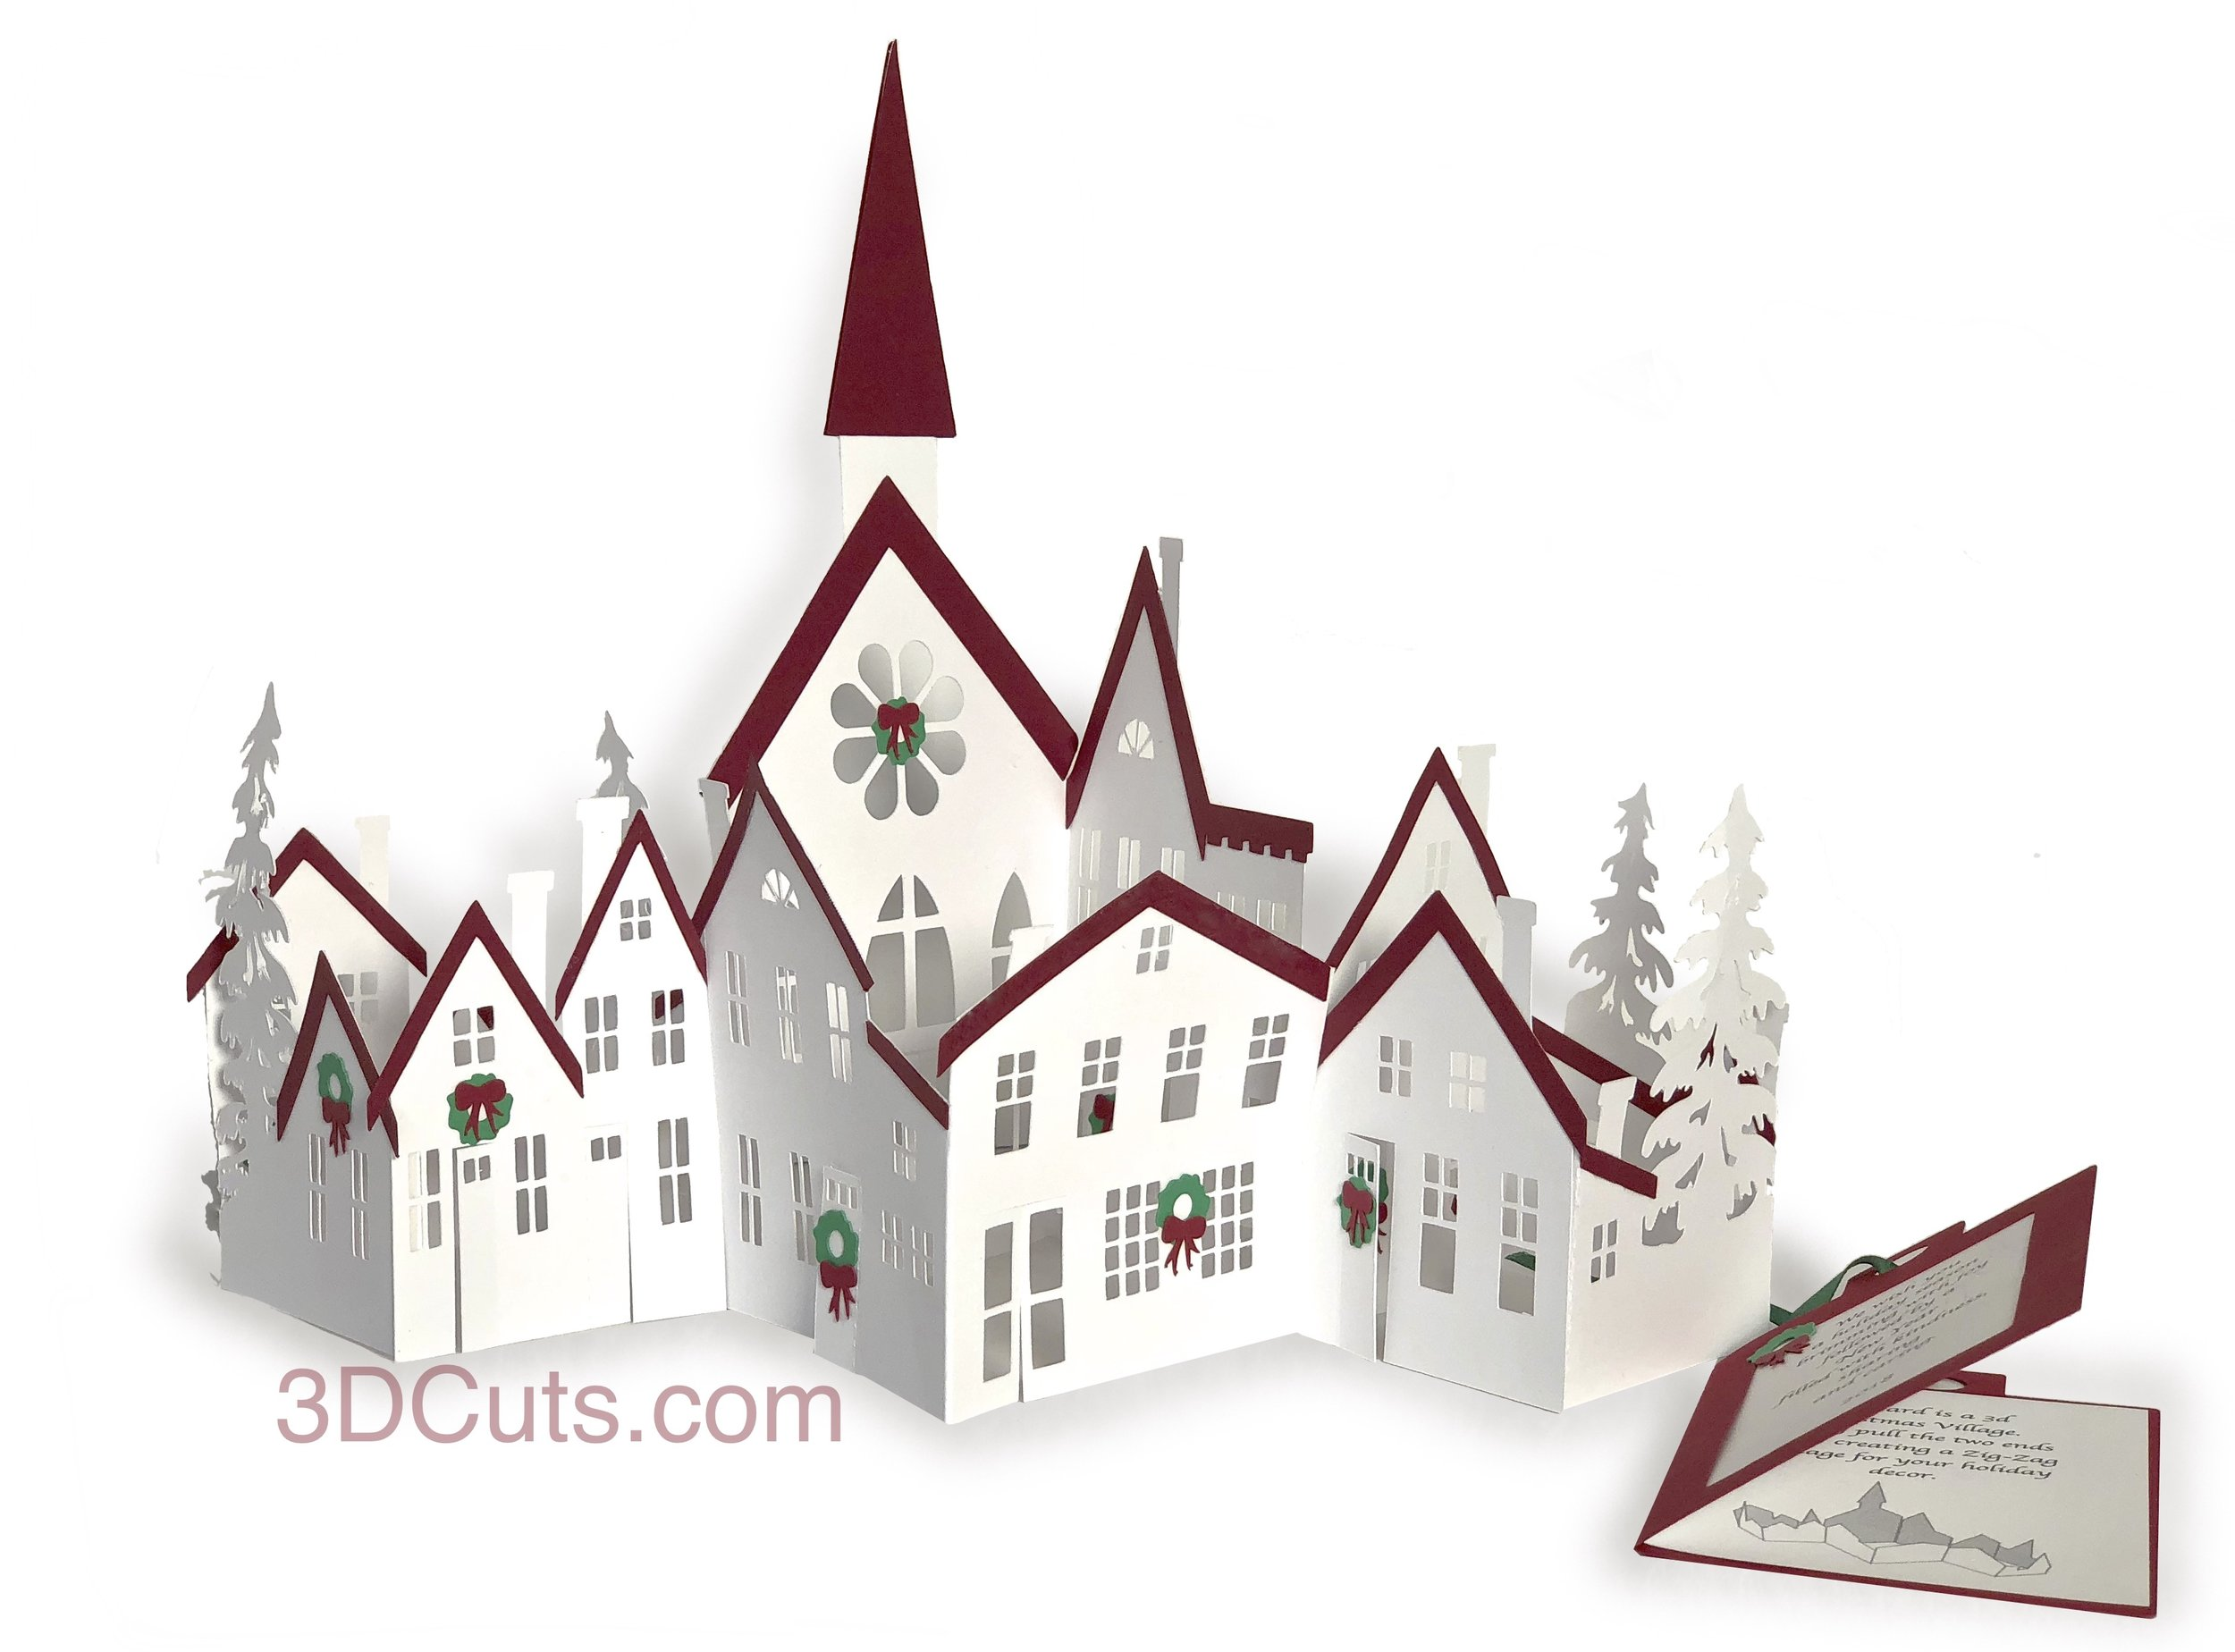 ZiZag Villagel, 3DCuts.com, Marji Roy, 3D cutting files in .svg, .dxf, and .pdf formats for use with Silhouette, Cricut and other cutting machines, paper crafting files